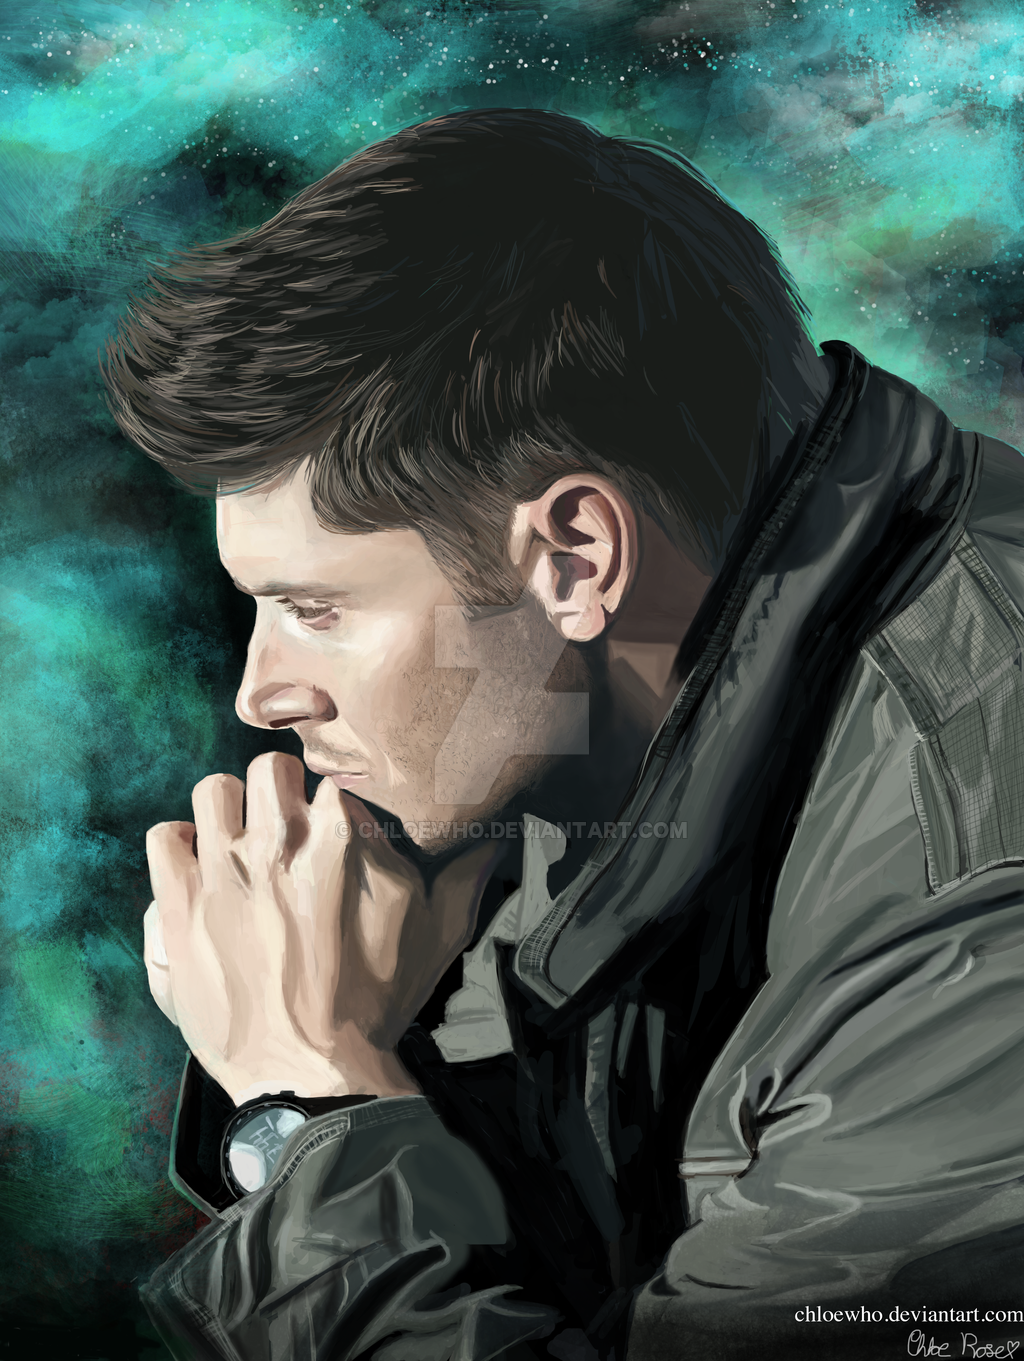 The Musings of Dean Winchester by ChloeWho.deviantart.com on @DeviantArt